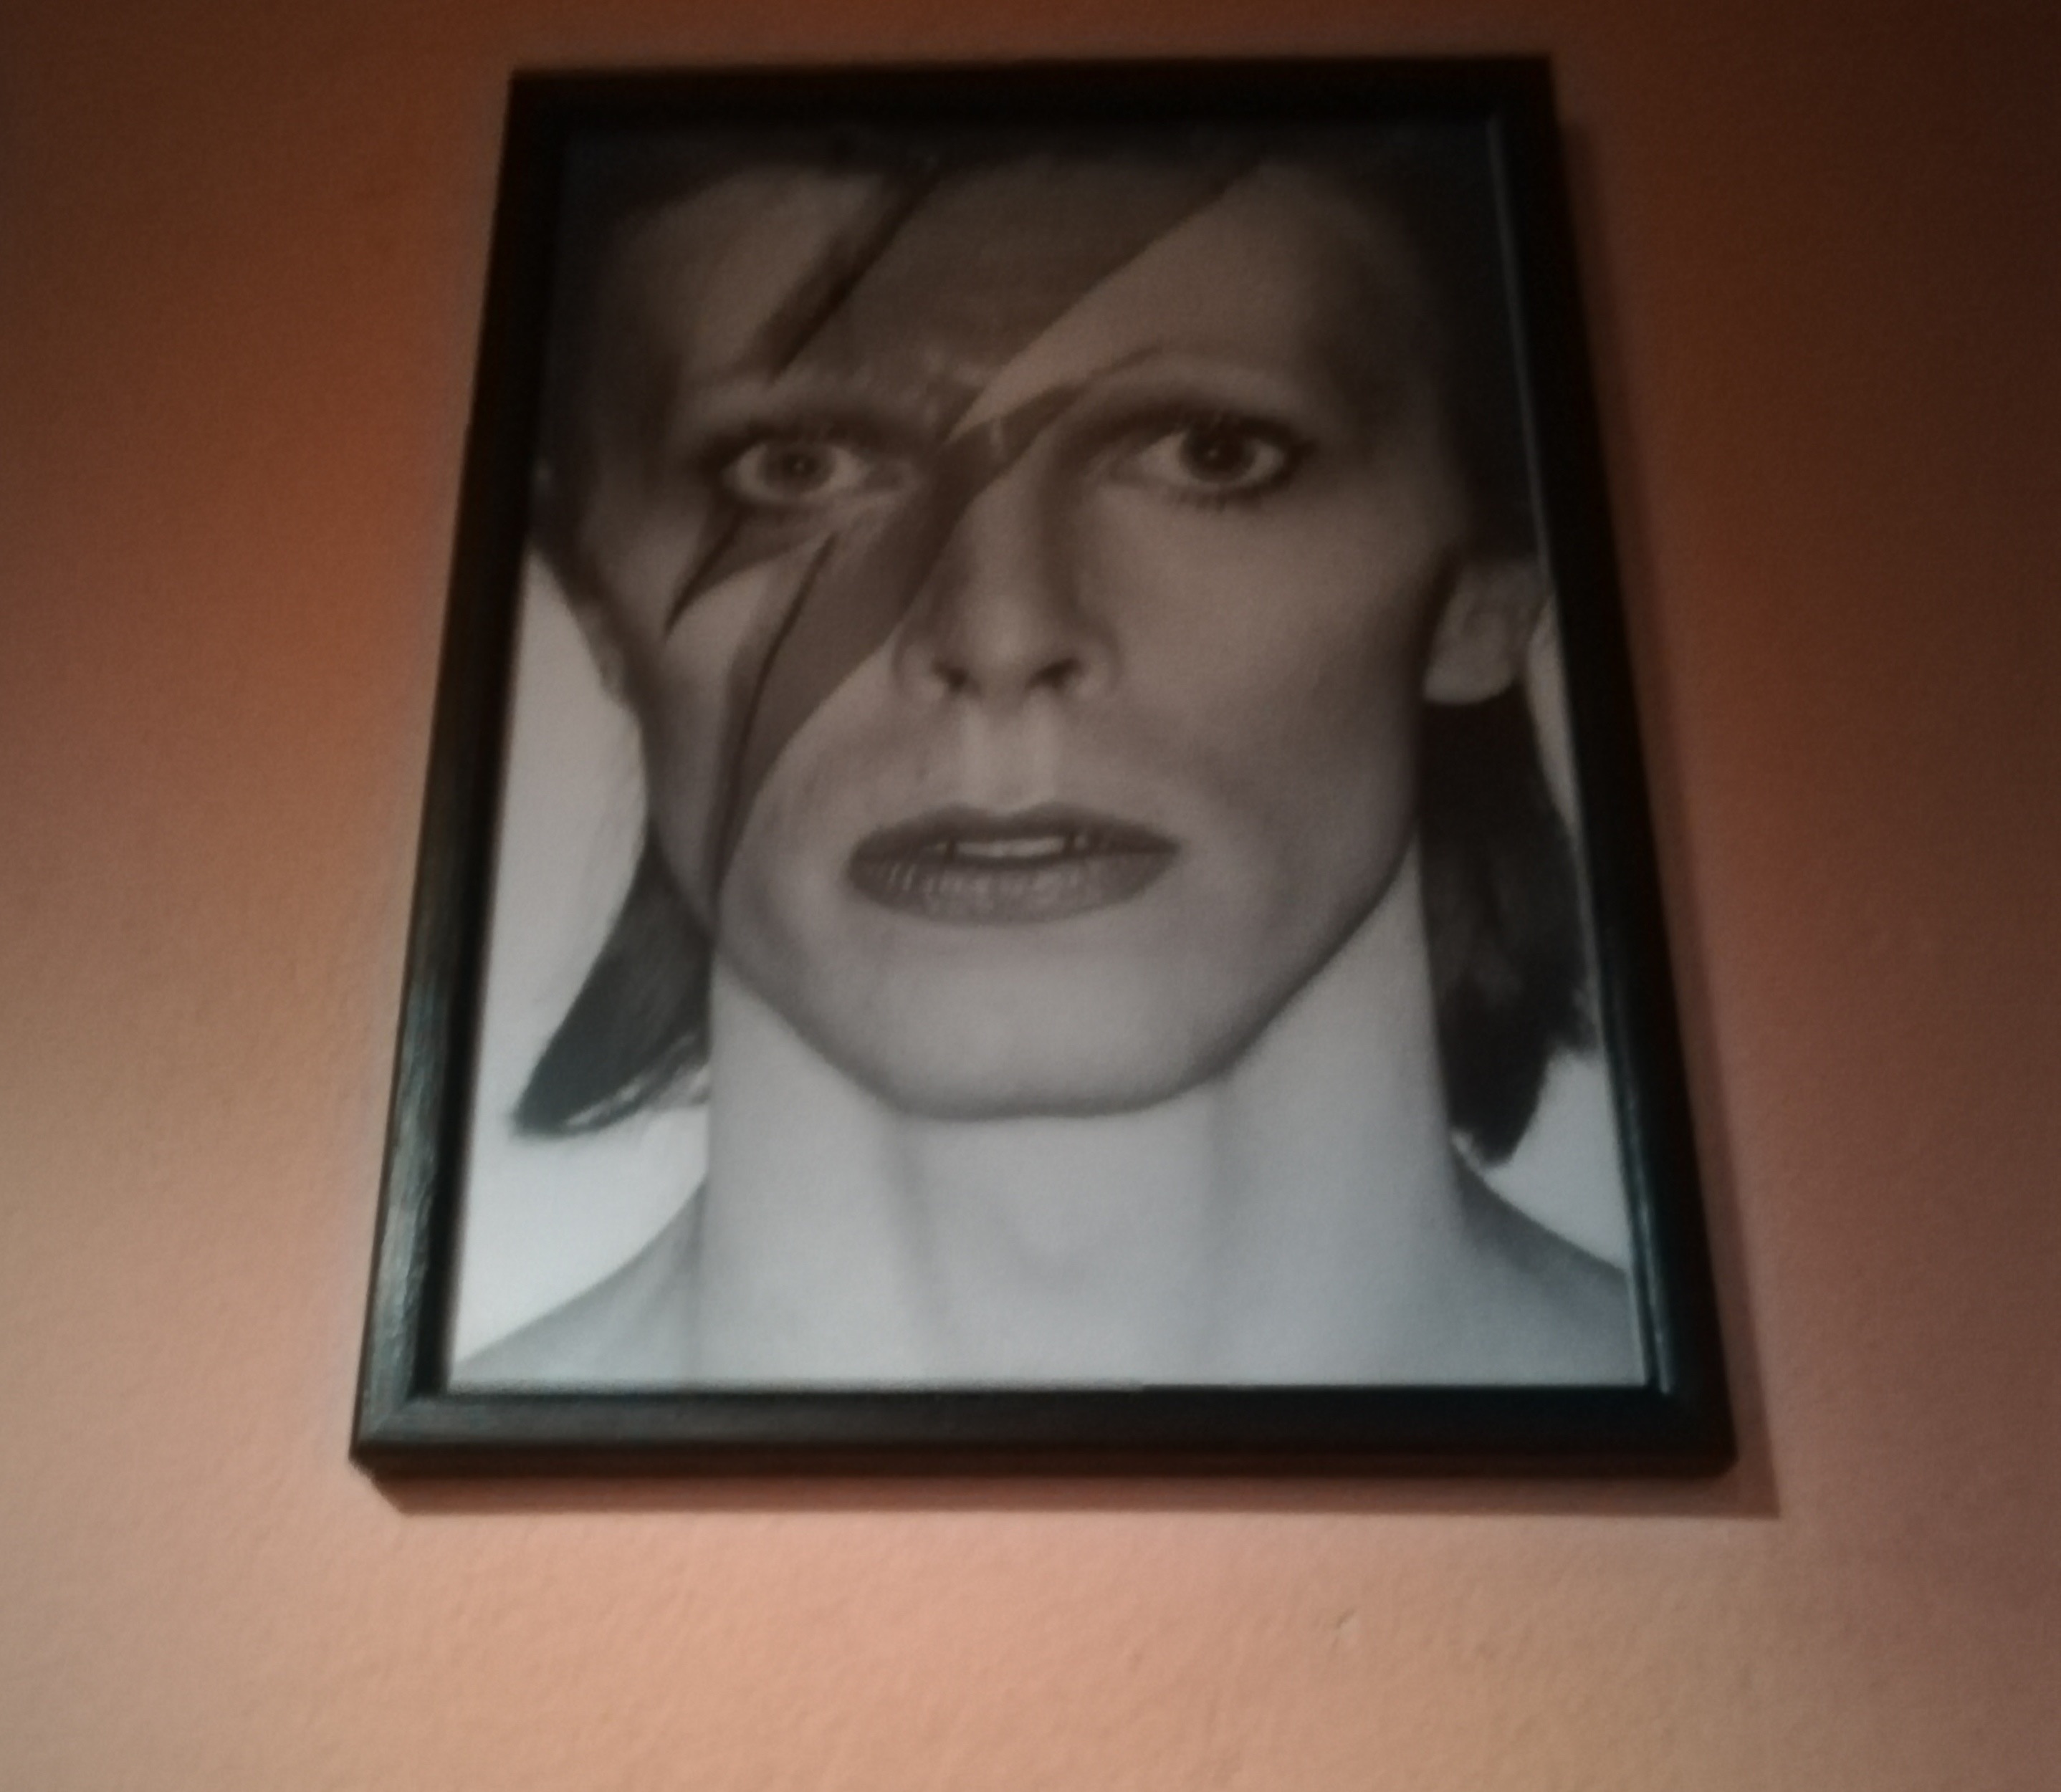 night bowie